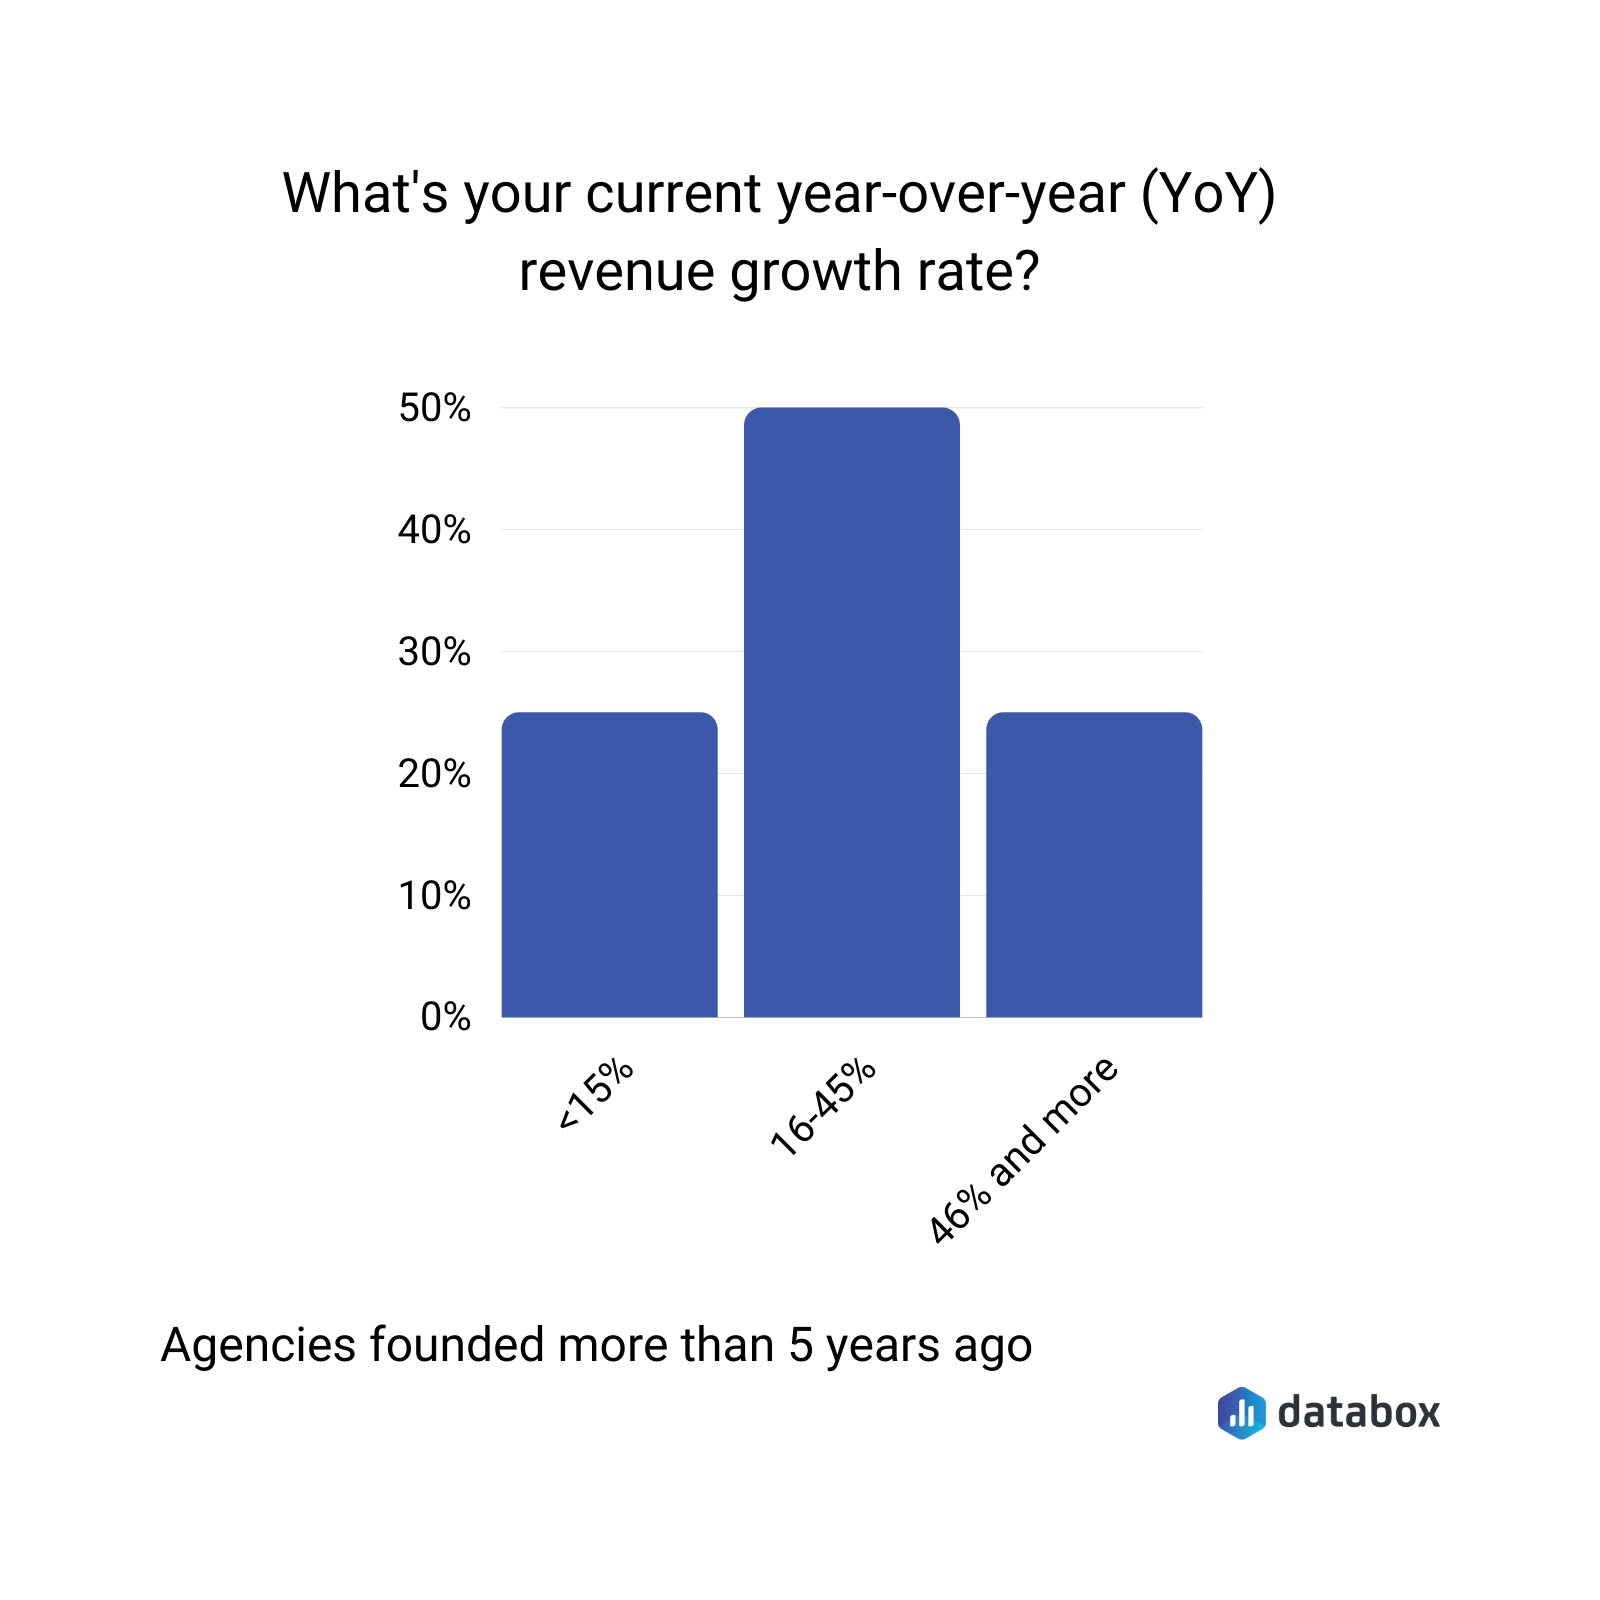 What's your current year-over-year (YoY) revenue growth rate?